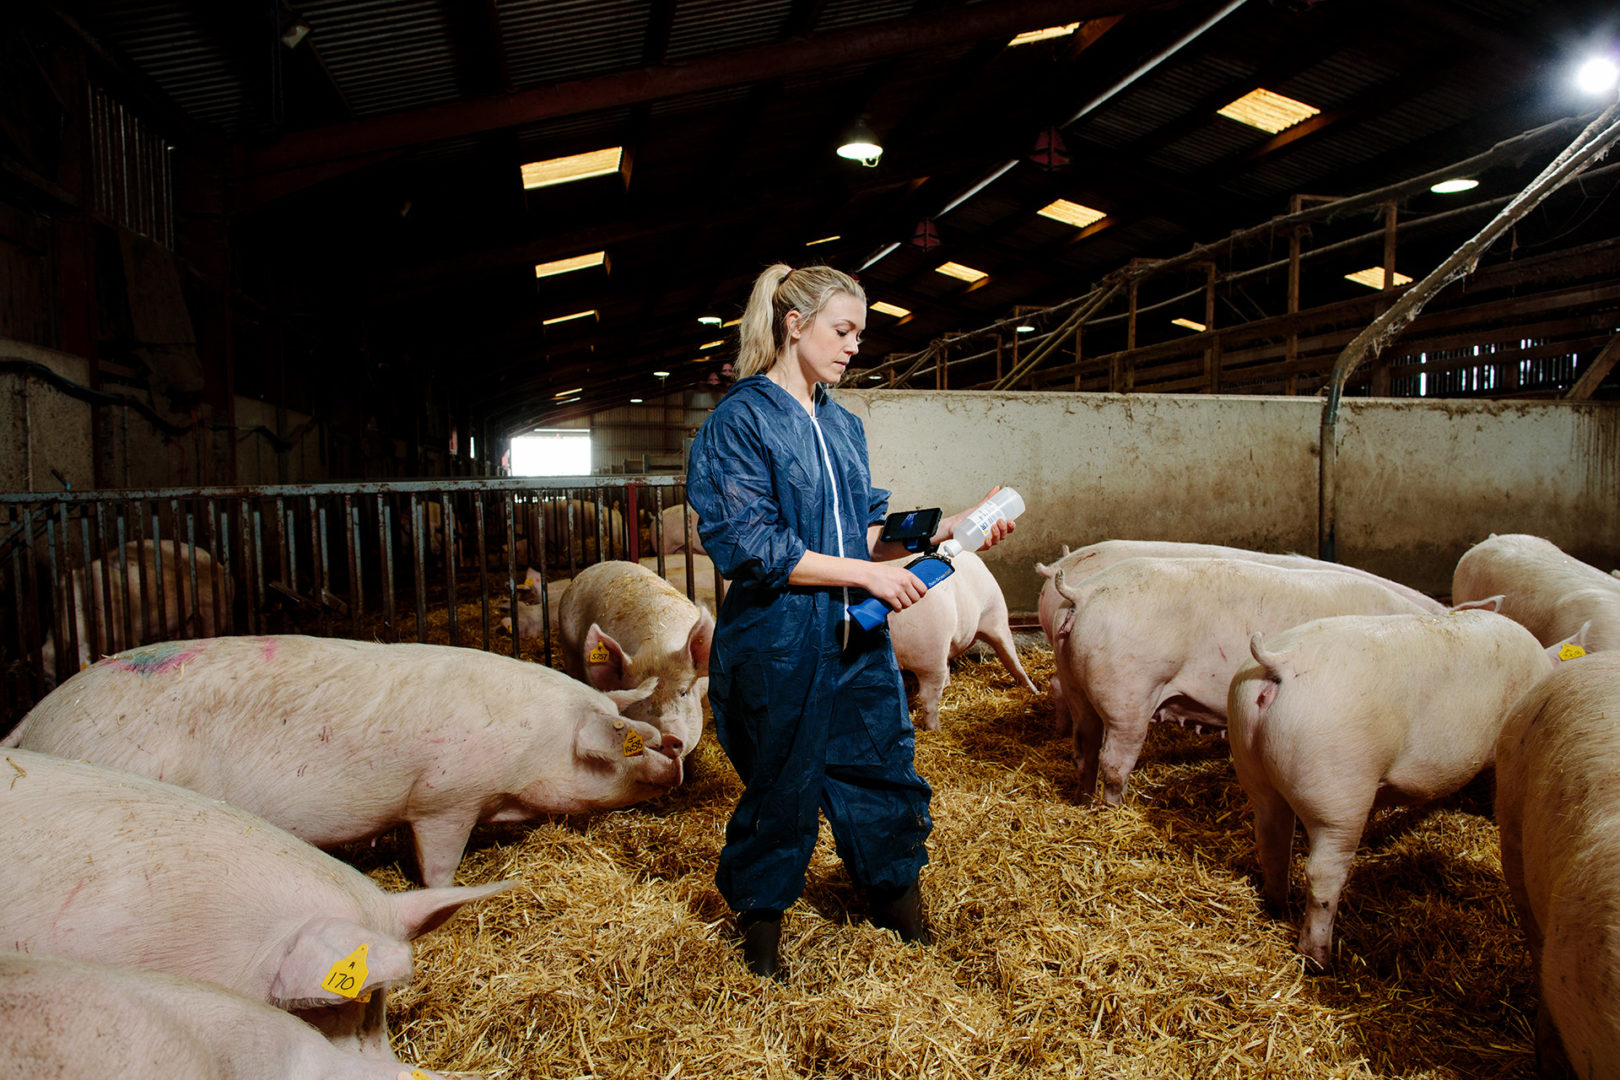 Inspecting the pigs with BCF Technologies equipment